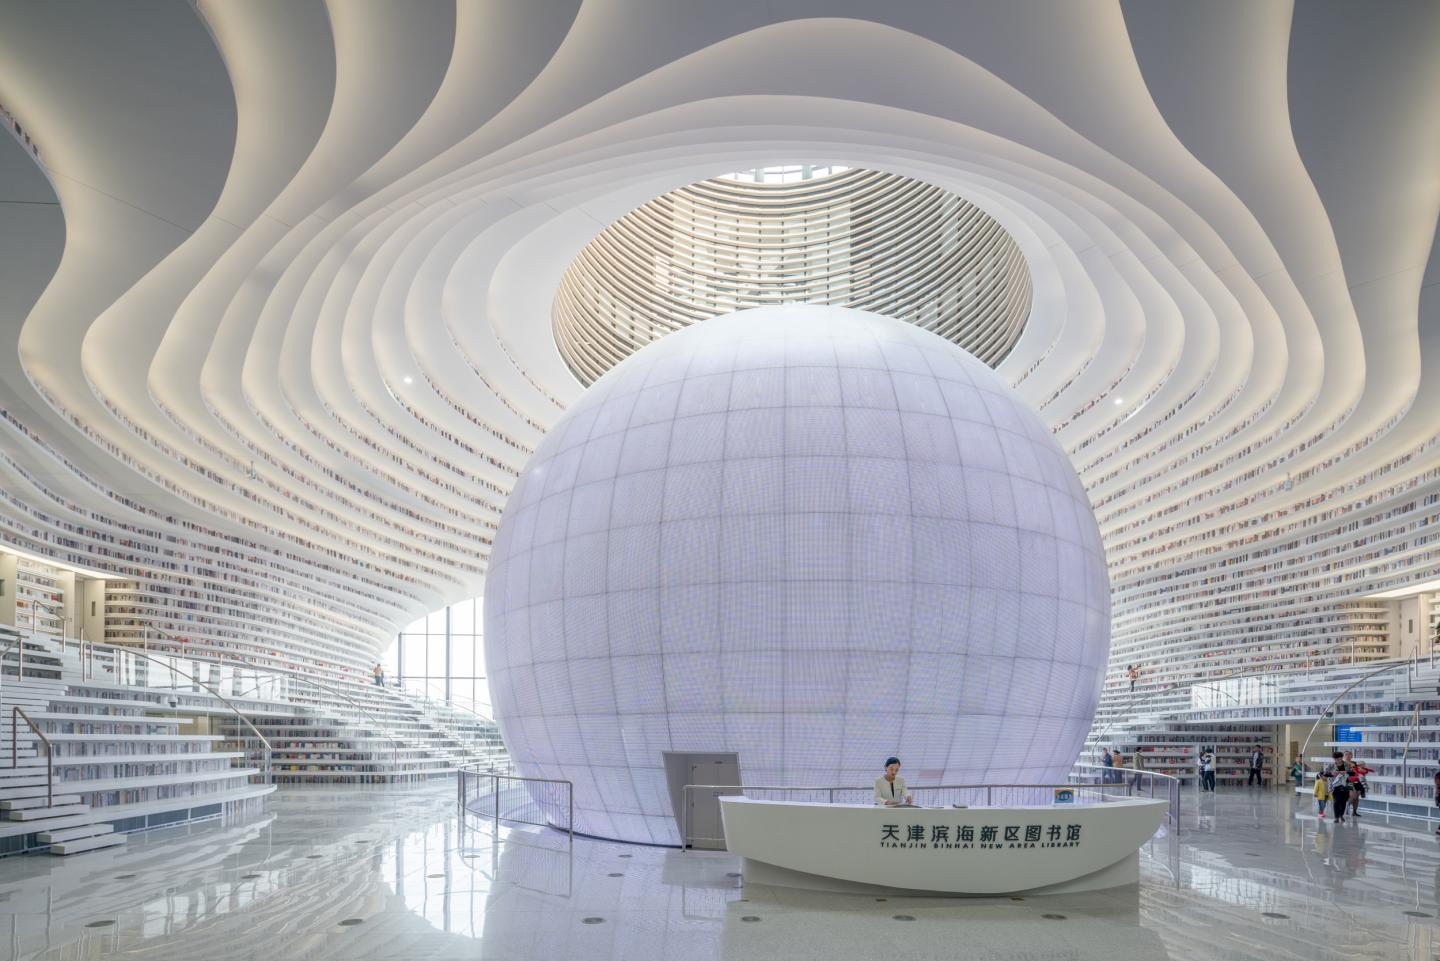 The Library has been dubbed The Eye of Binhai